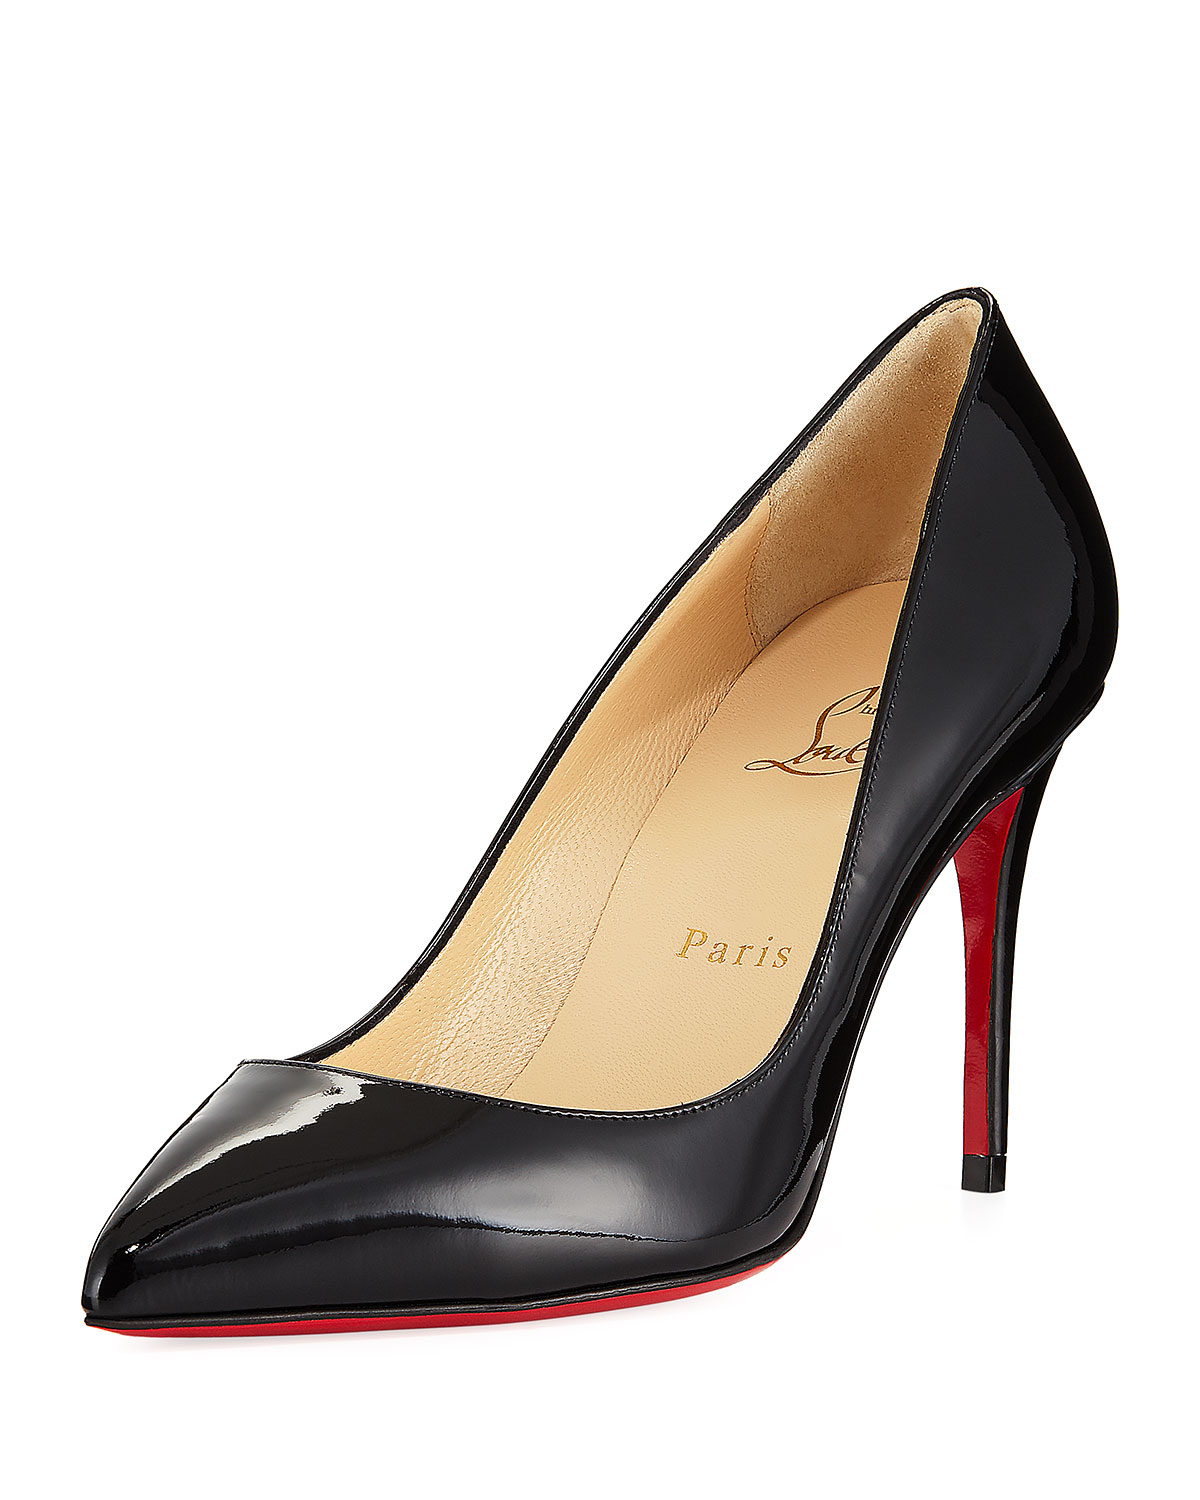 b49b00f391d Christian Louboutin Pigalle Follies 85mm Patent Red Sole Pump ...